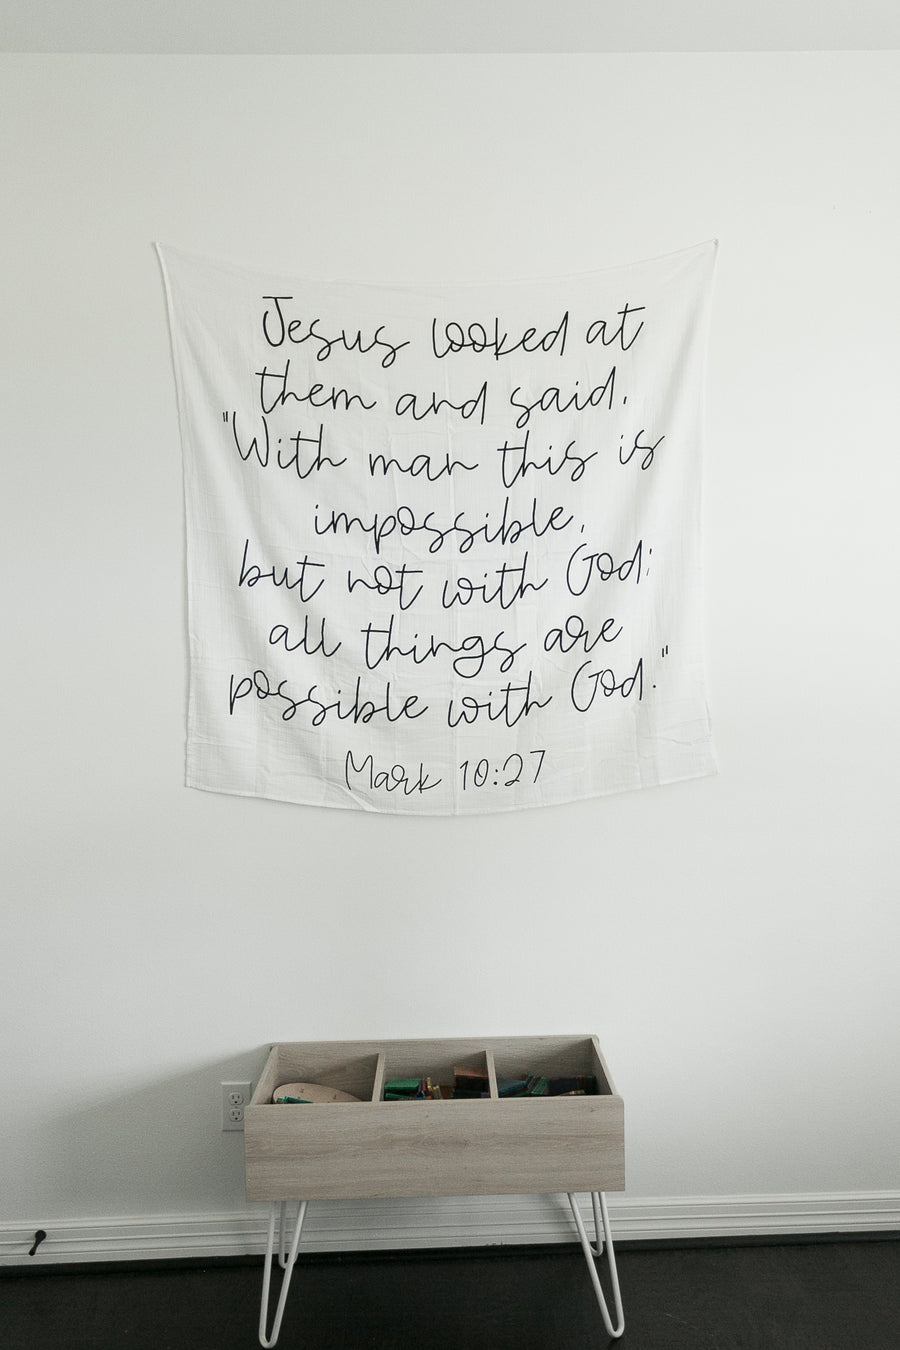 "*NEW* Organic Cotton Muslin Swaddle Blanket + Wall Art -  Jesus looked at them and said, ""With man this is impossible, but not with God; all things are possible with God."" Mark 10:27"